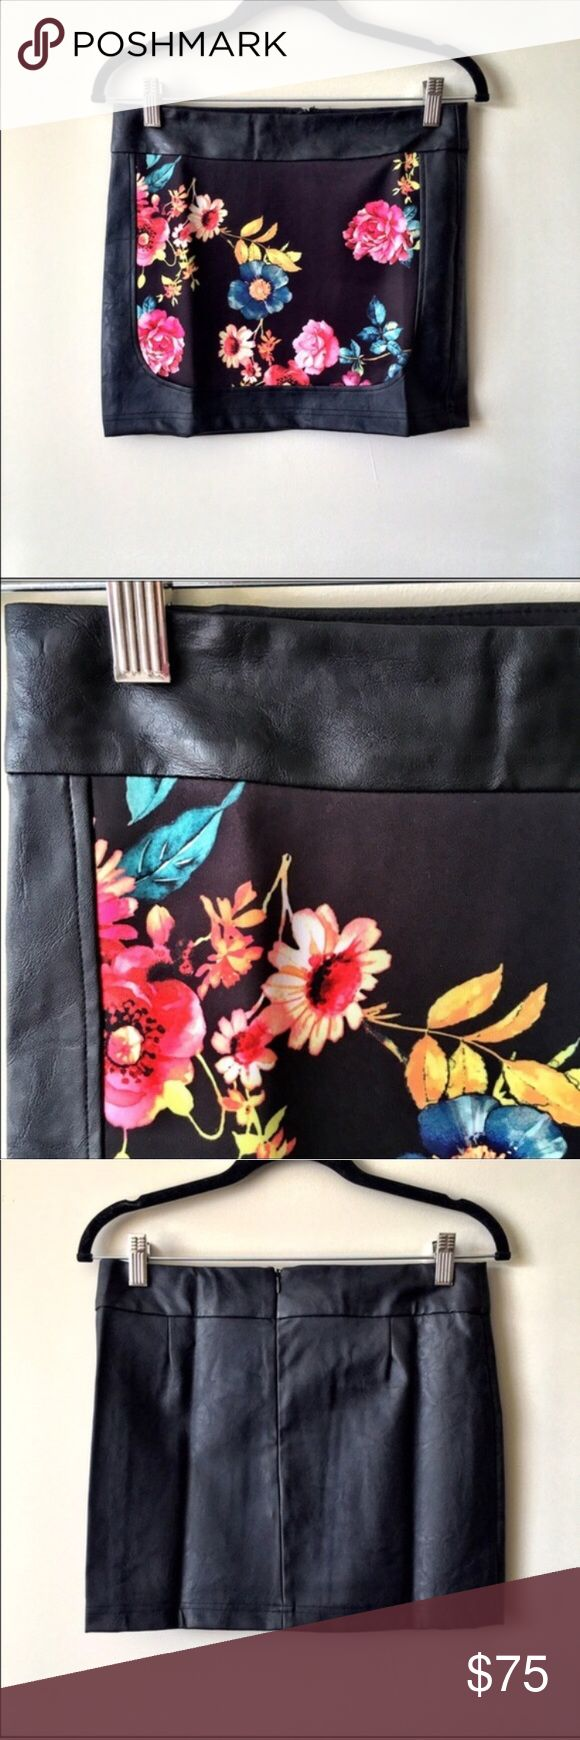 """Whitney Eve Black Faux Leather Floral Skirt NWT Whitney Eve floral mini skirt. A one of a kind piece right on trend. Approx 15"""" in length, 100% polyester. Size Small waist measures 15"""", size M measures 16"""". Whitney Eve Skirts Mini"""